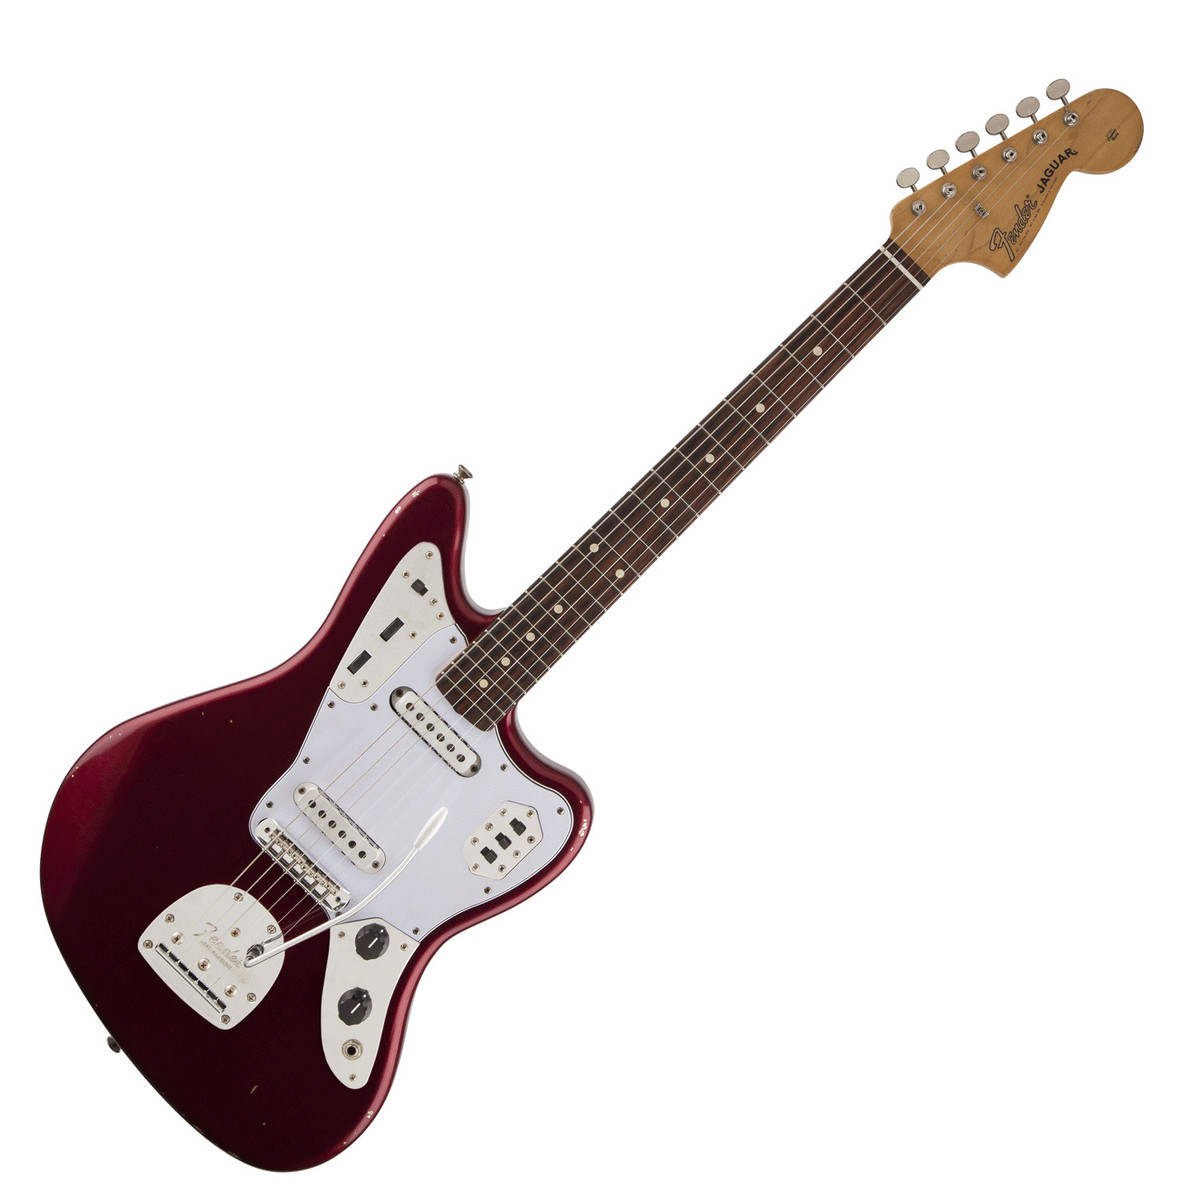 fender road worn 60s jaguar electric guitar candy apple red at gear4music. Black Bedroom Furniture Sets. Home Design Ideas